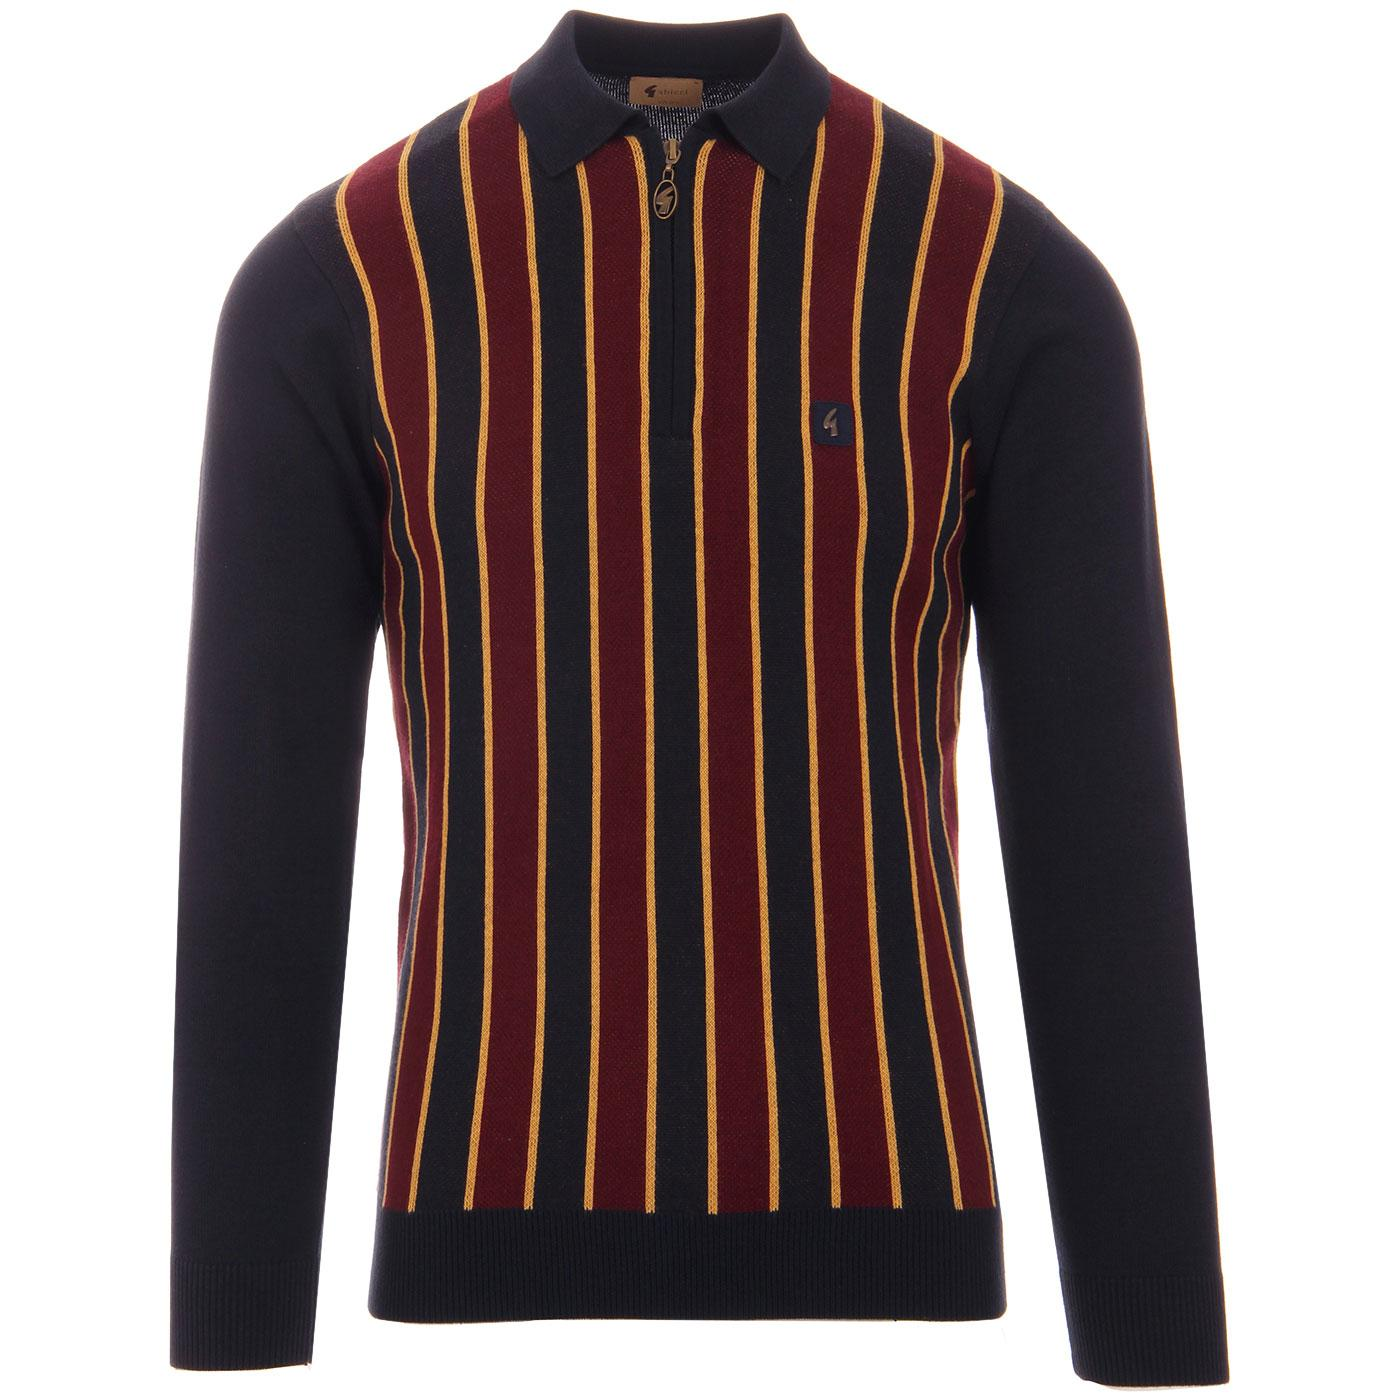 Touch GABICCI VINTAGE Mod Stripe Knit Polo (Navy)